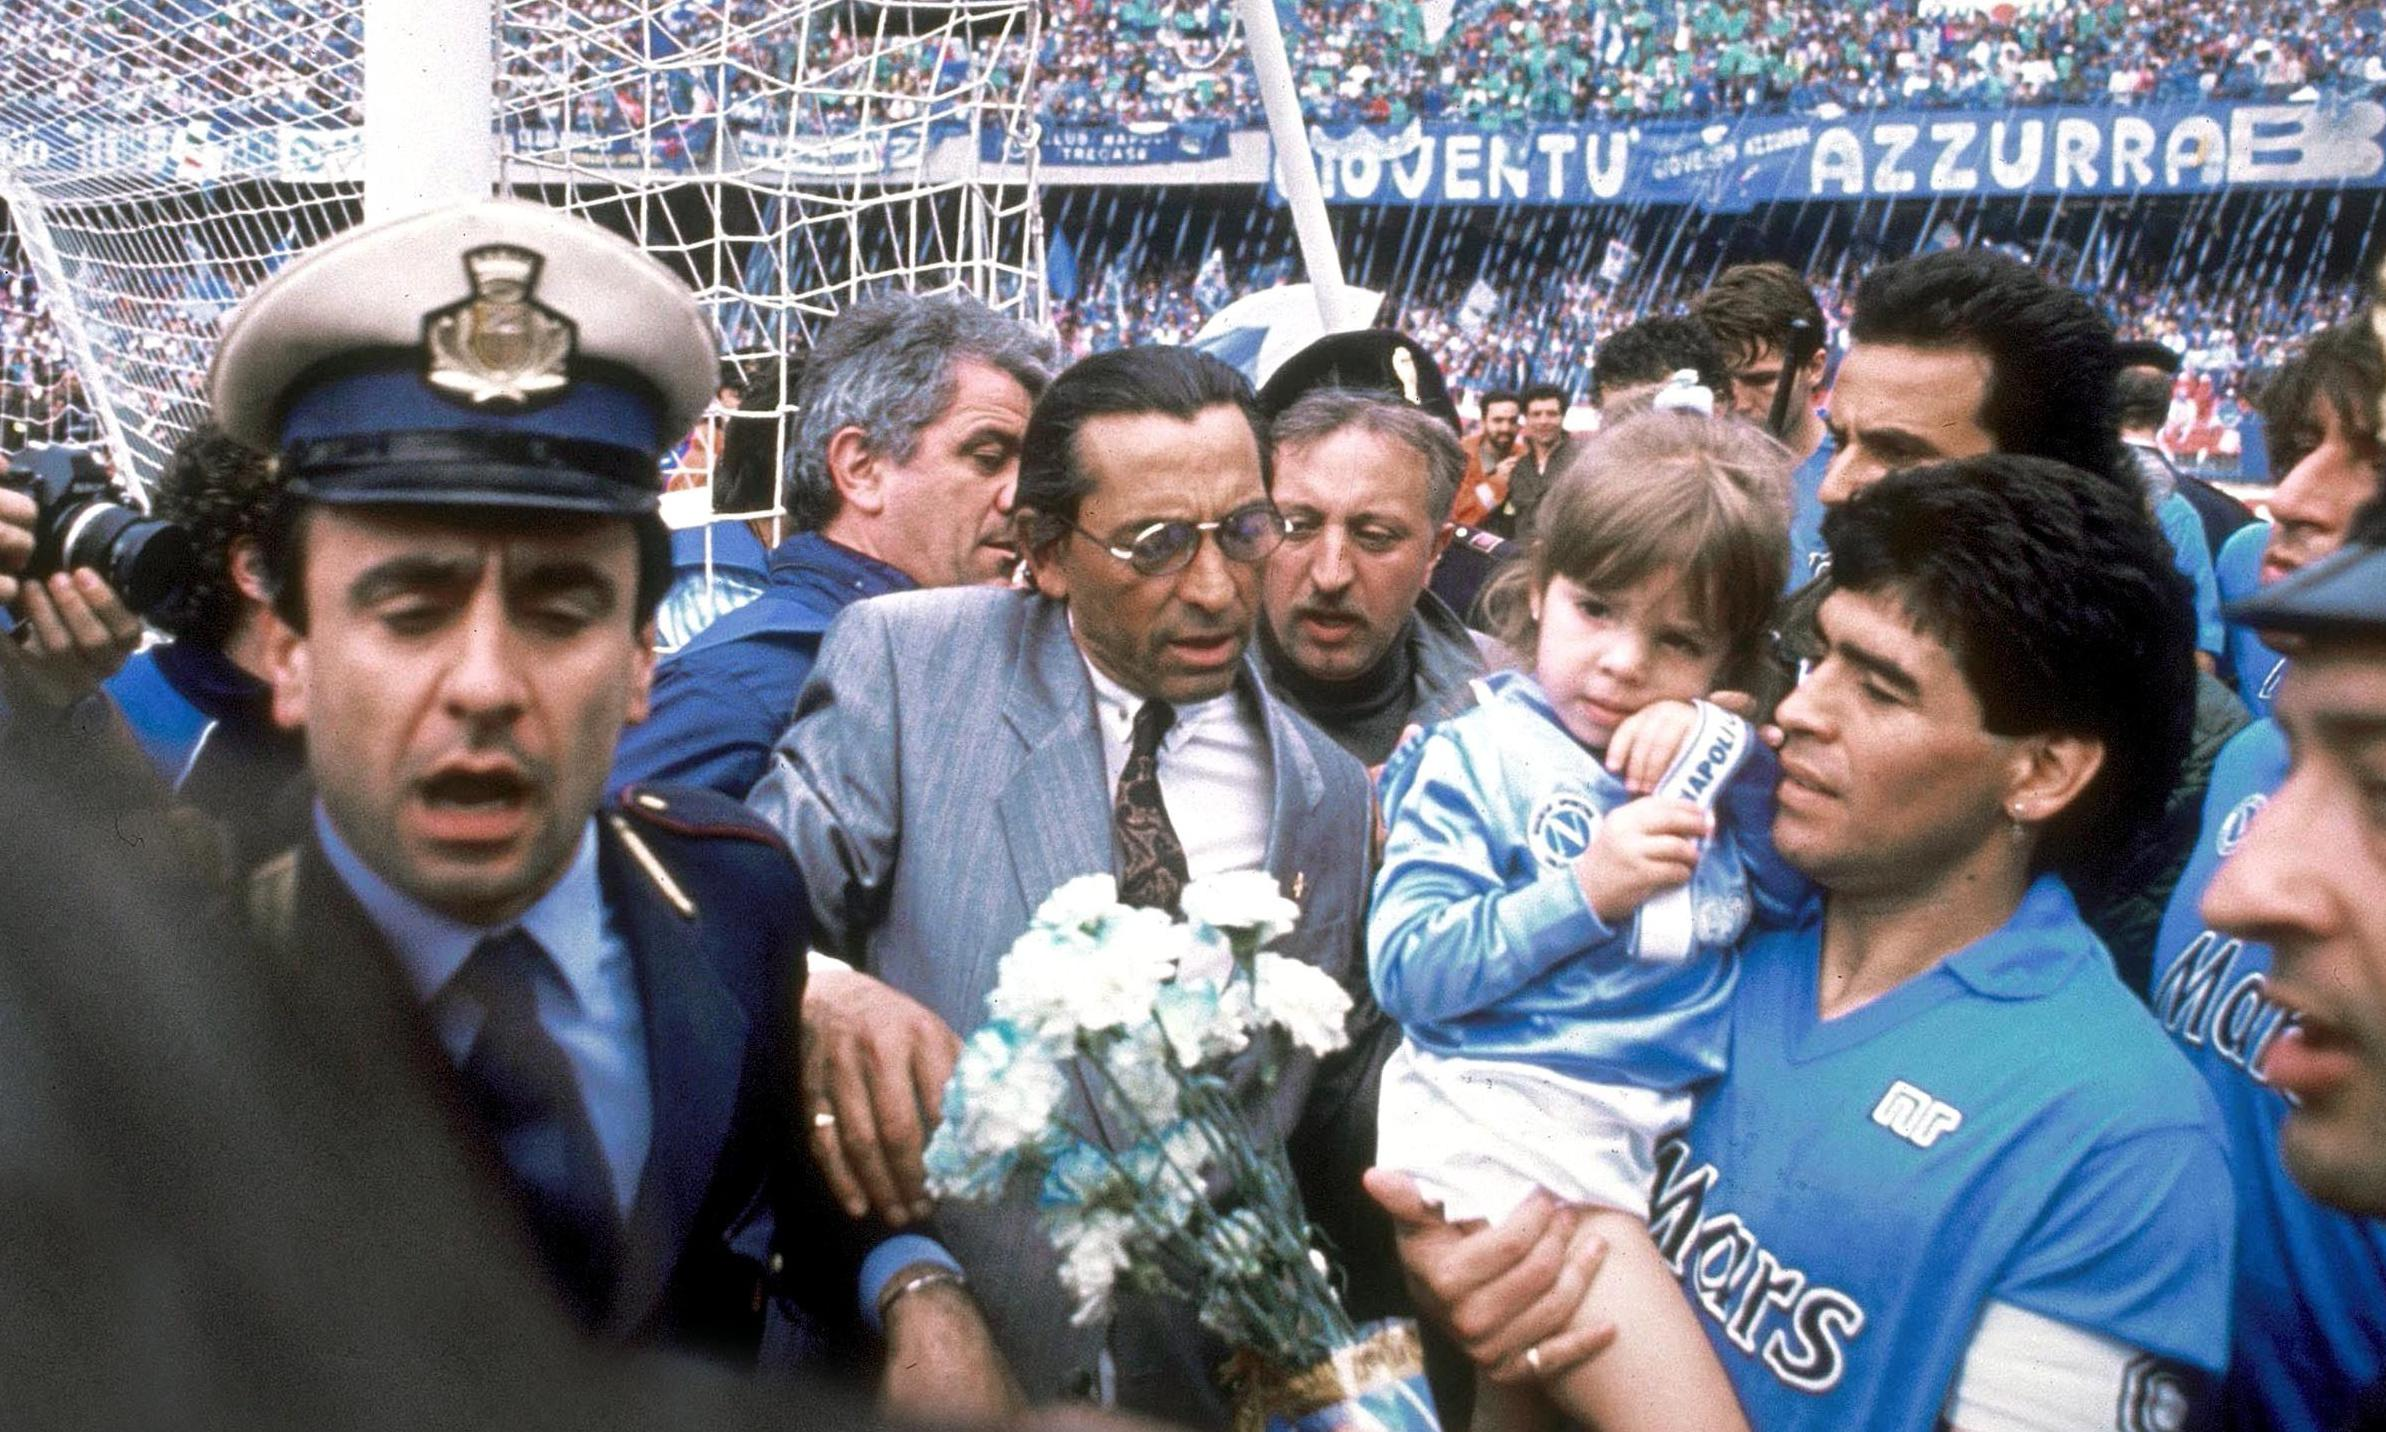 One that got away for Maradona and Napoli remains wrapped in suspicion